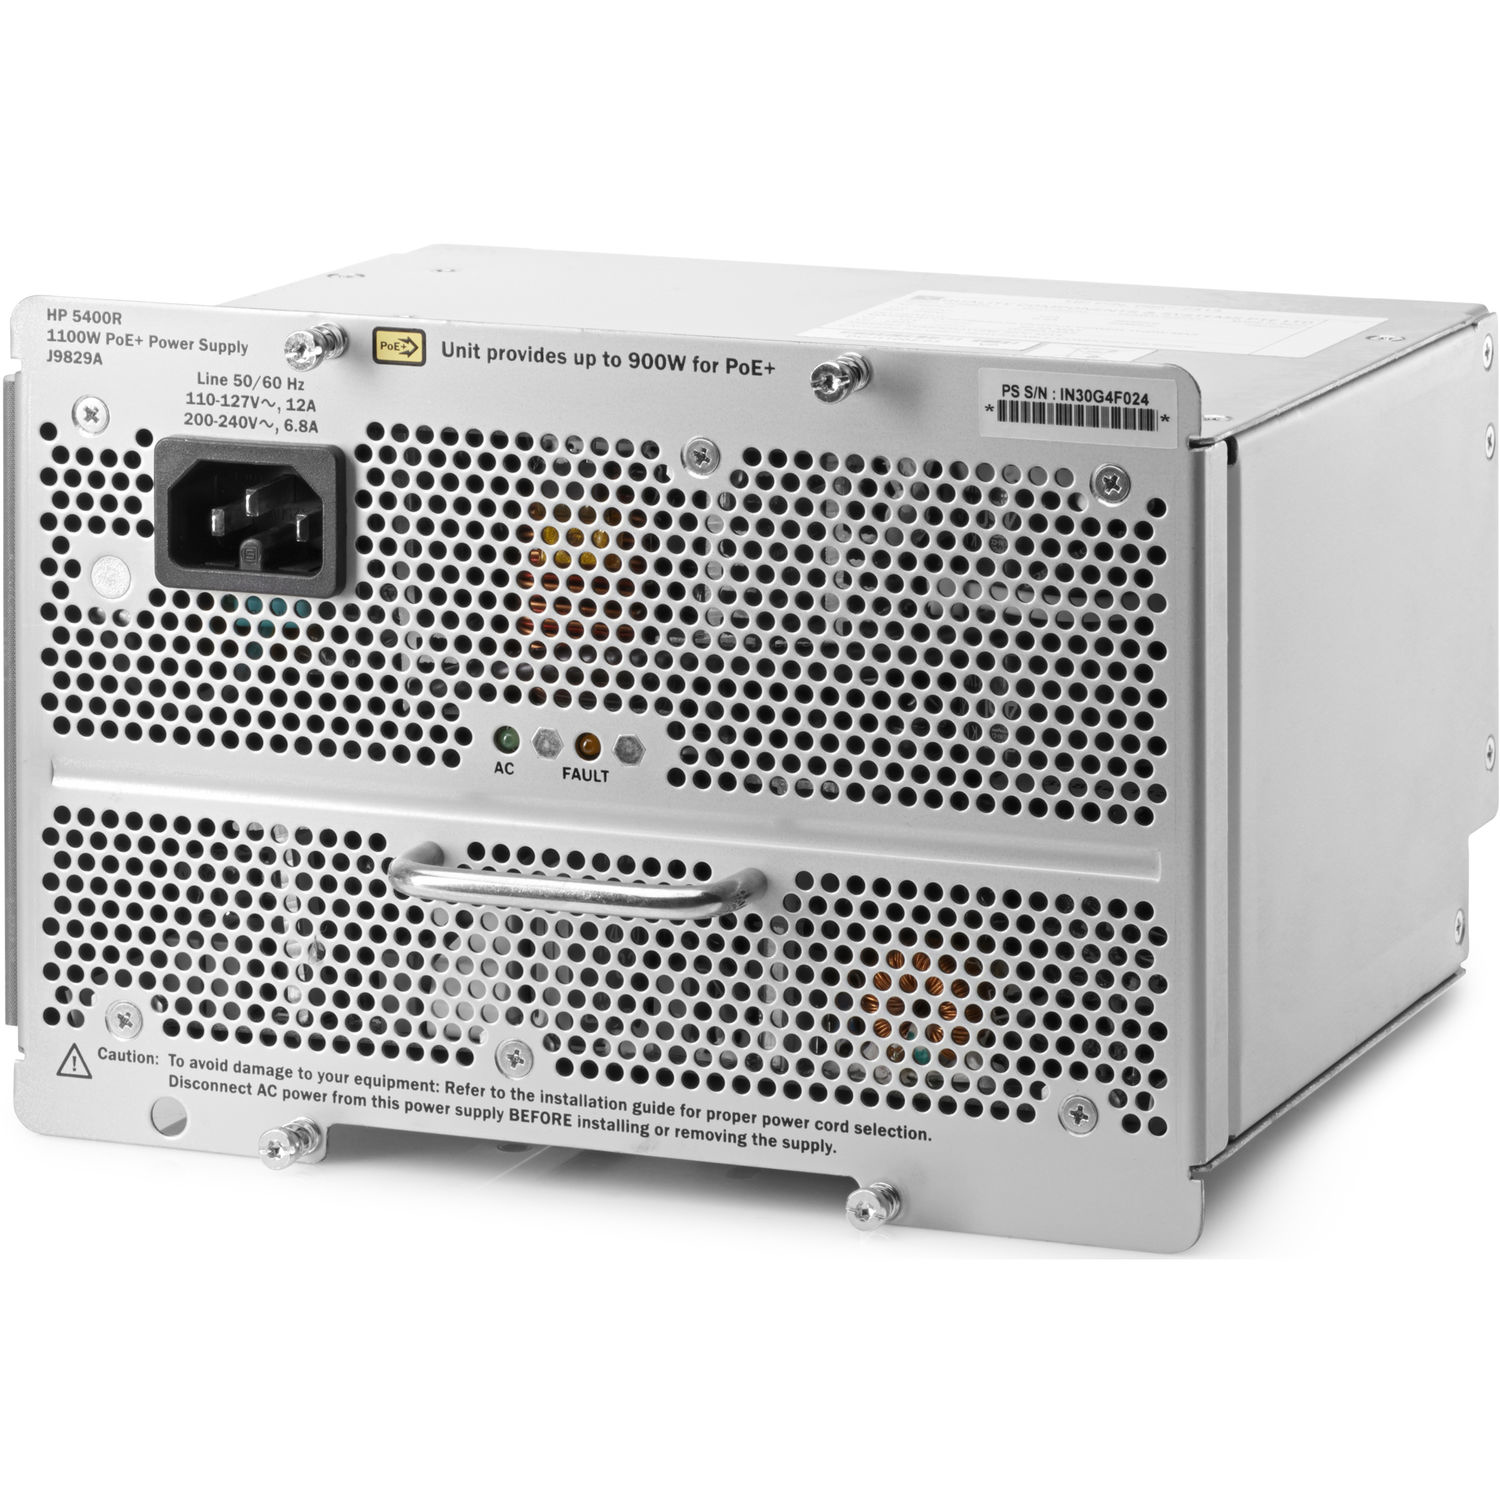 HPE Aruba 5400R 1100W PoE+ zl2 Power Supply (J9829A#ABB)